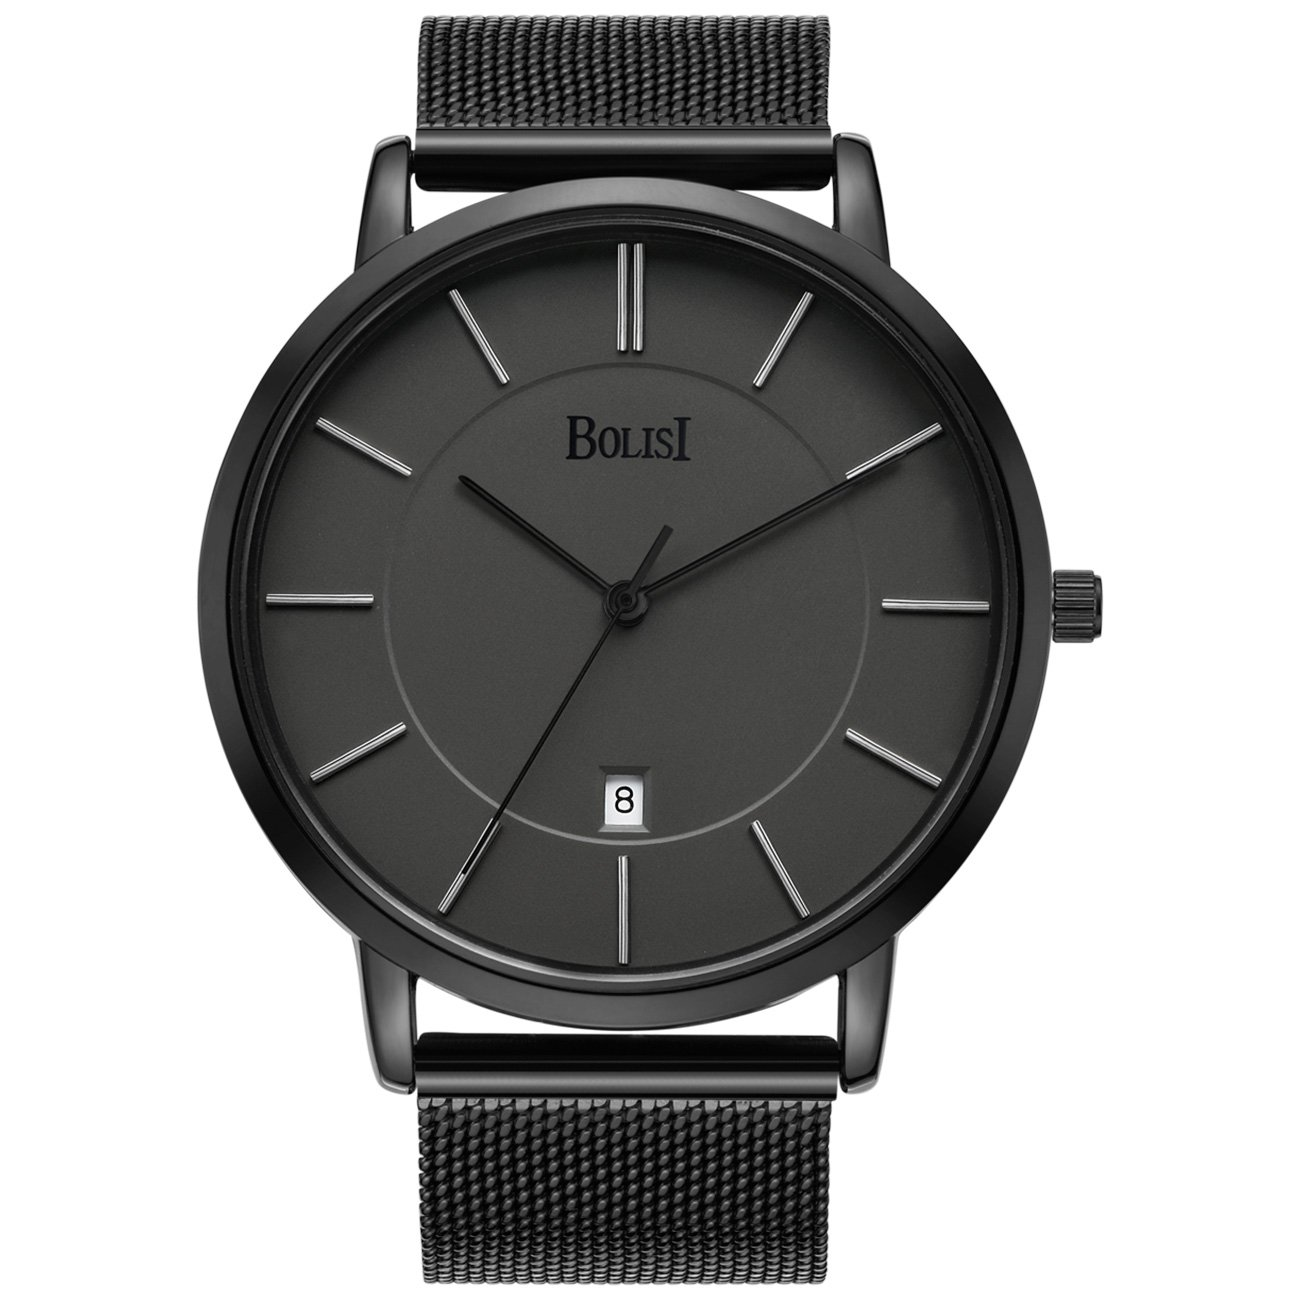 BOLISI Mens Womens Watches Ultra-Thin Classic Analog Quartz Fashion DressWrist Watch with Date and Milanese Mesh Band or Leather Strap for Gift (Black Band)